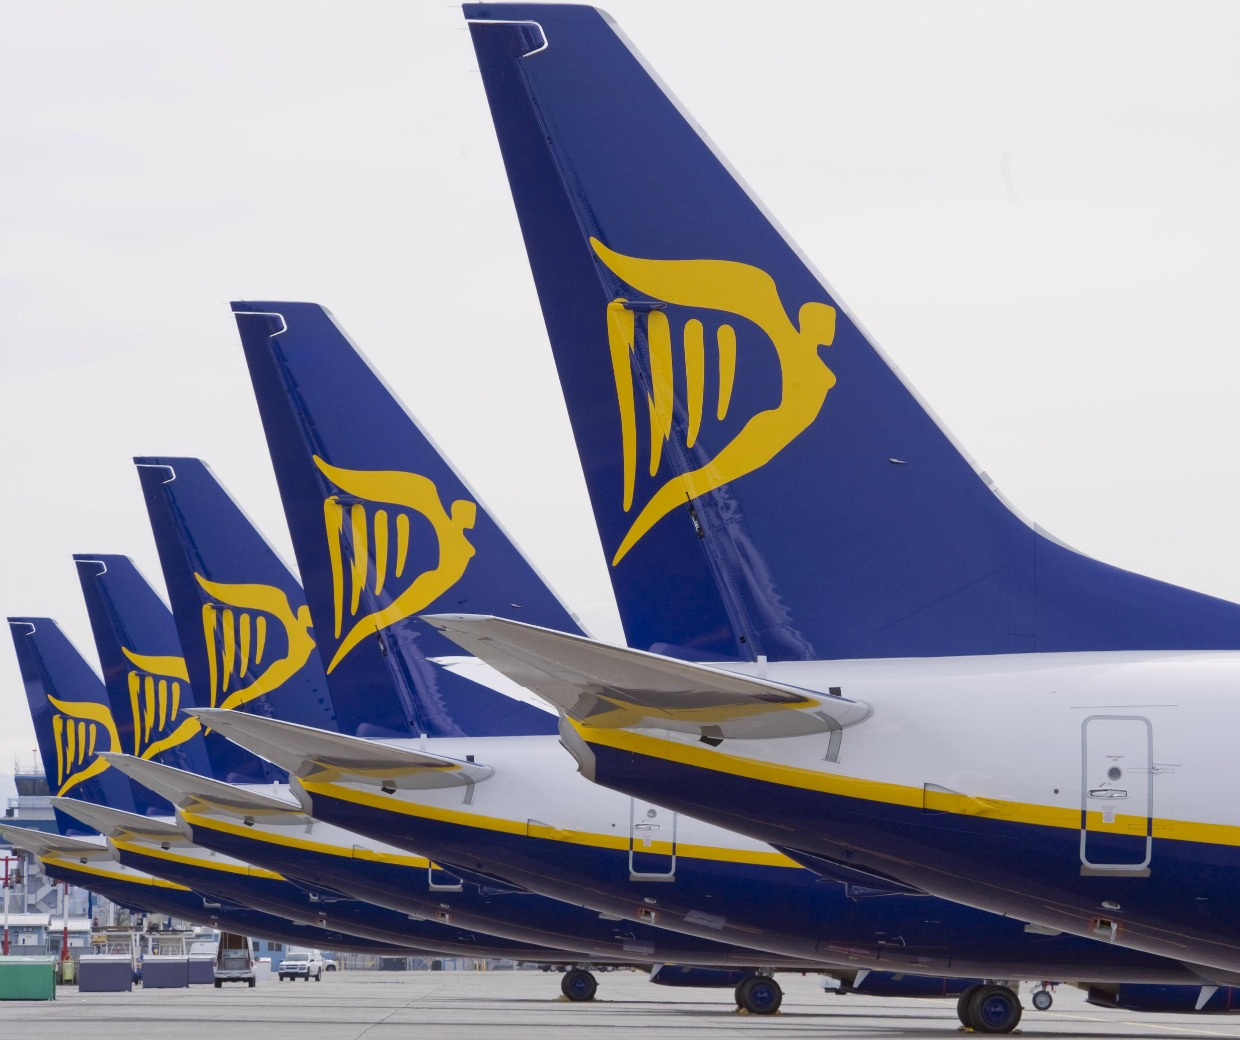 Strategies used by ryanair to strenghten their position in market